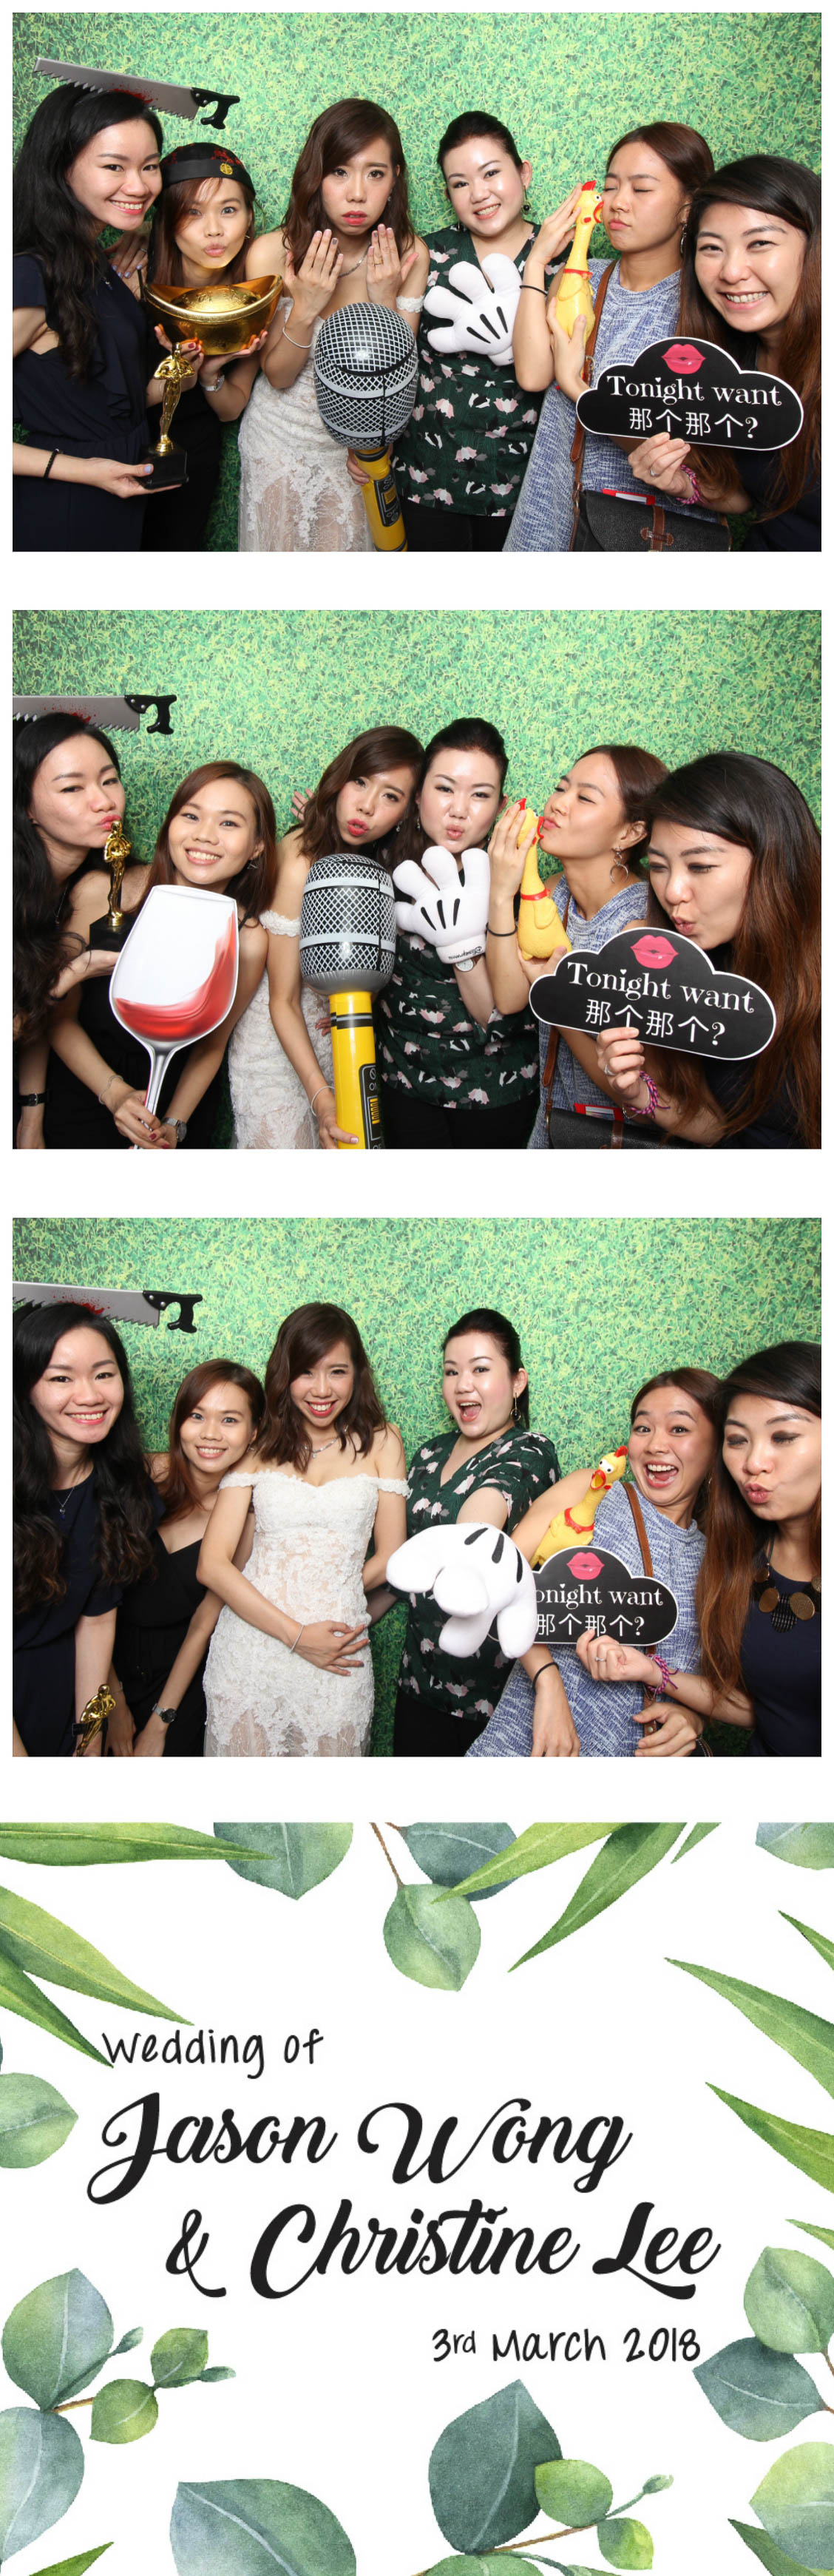 Photobooth 0302-44